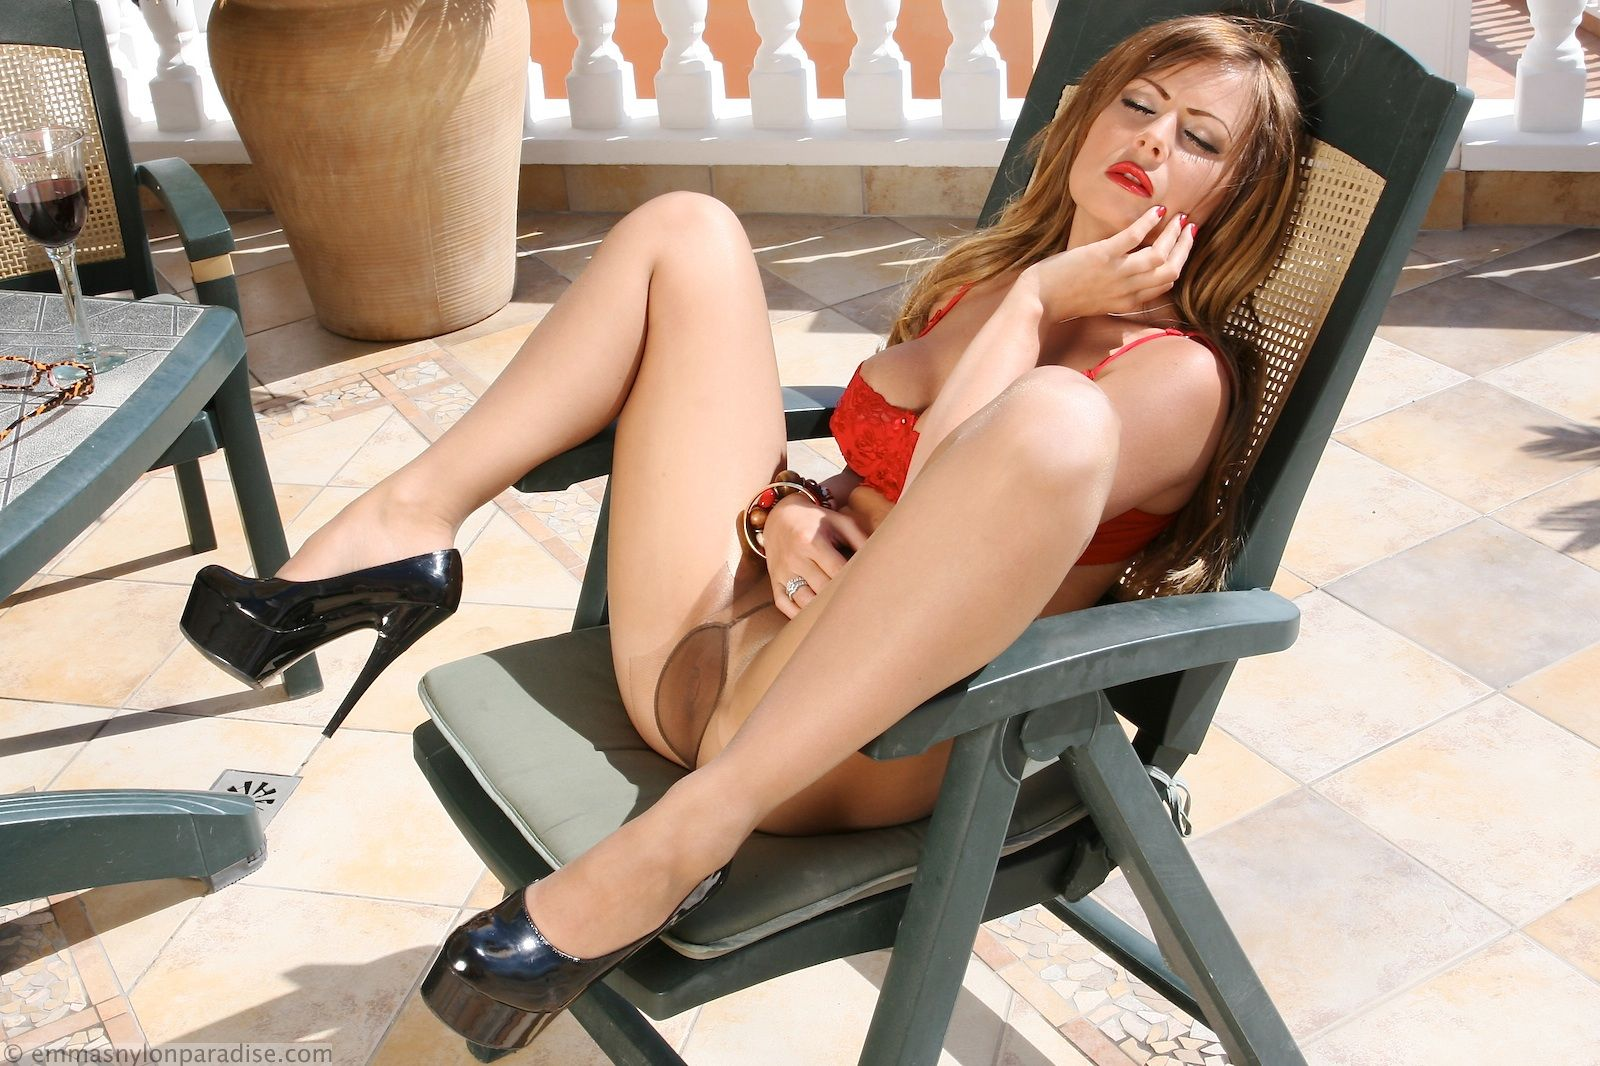 Pantyhose Posted 79